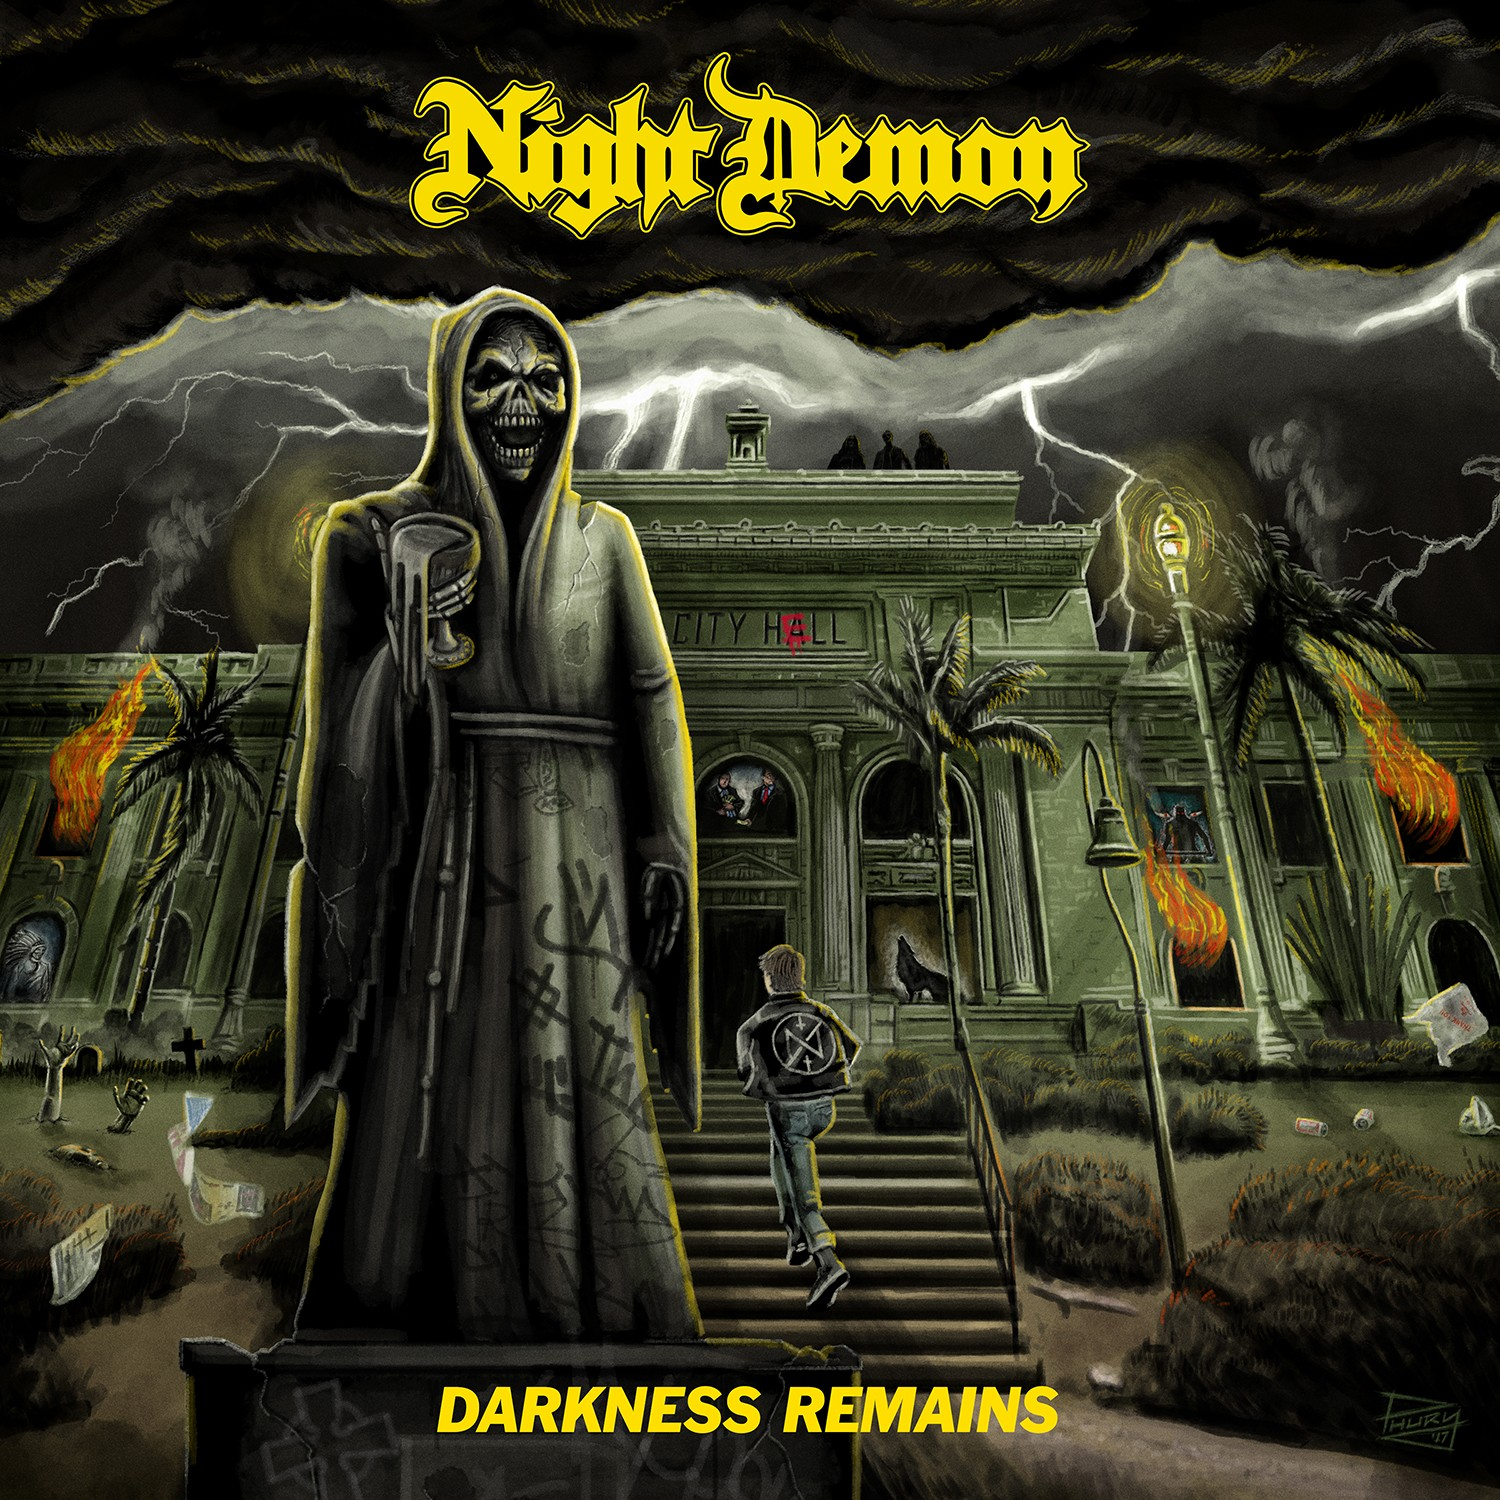 Night Demon_Darkness Remains_1500x1500